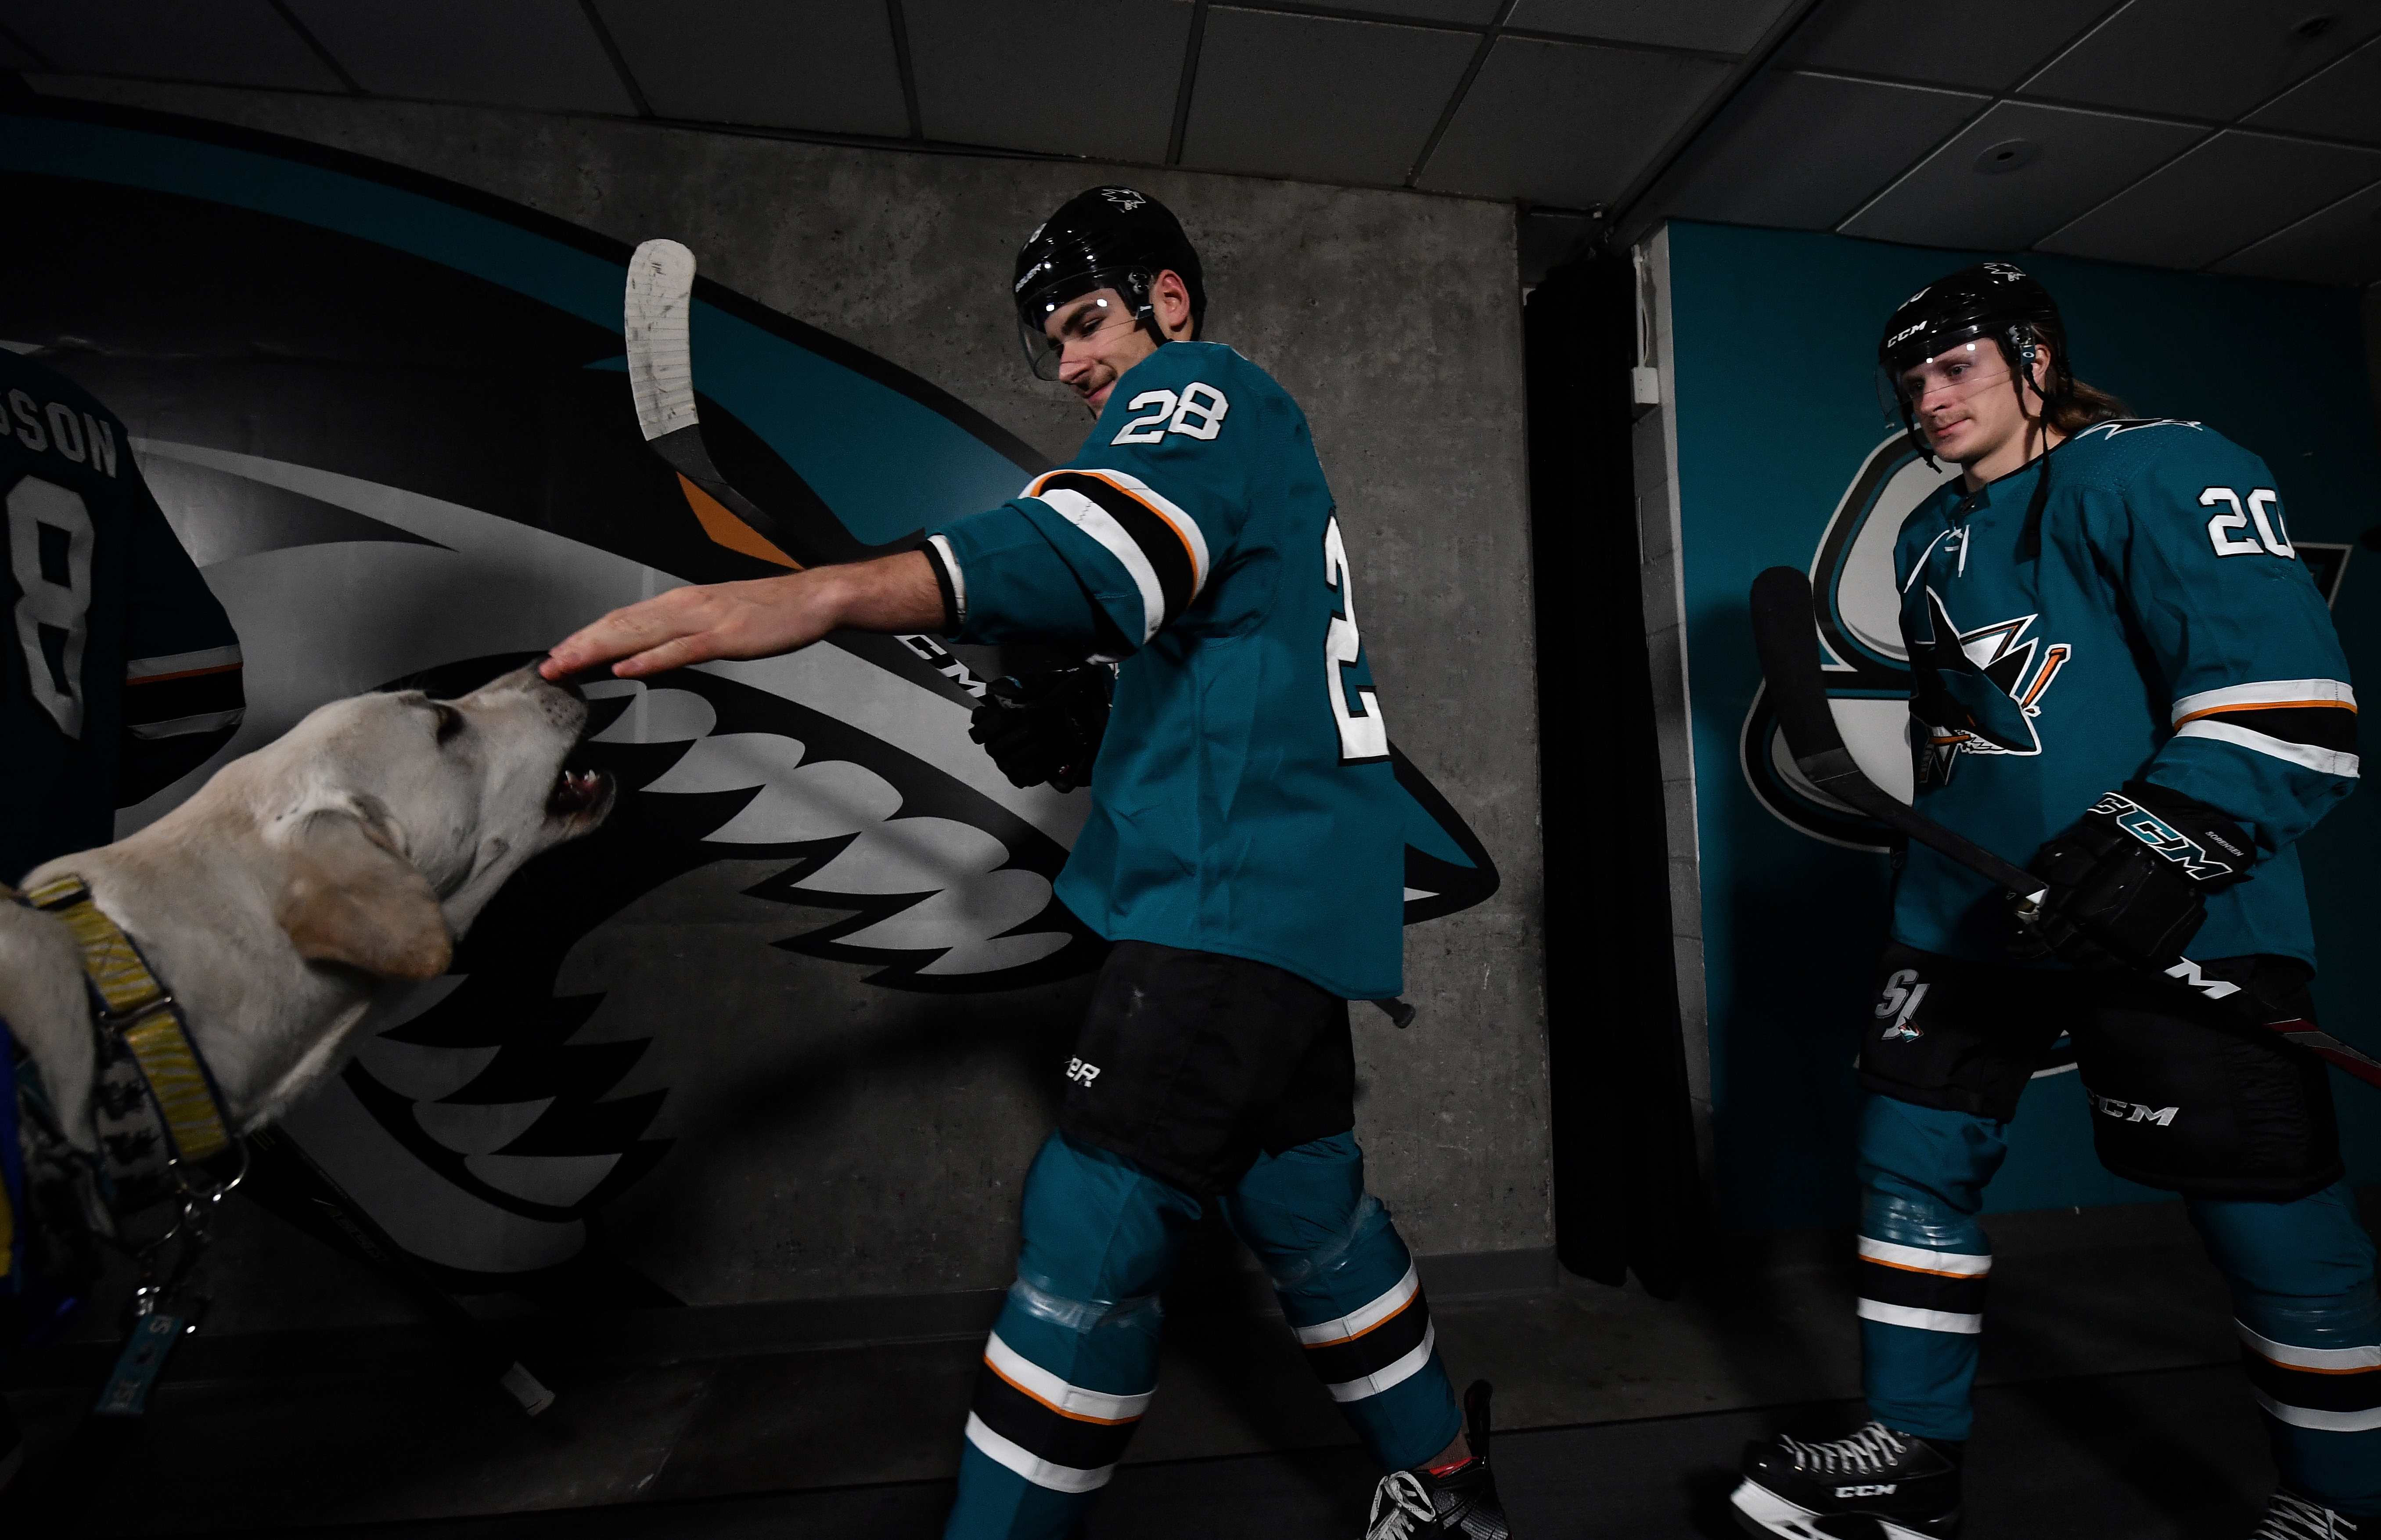 Timo Meier #28 of the San Jose Sharks greets the Sharks pup Finn before taking the ice against the Washington Capitals at SAP Center on December 3, 2019 in San Jose, California.